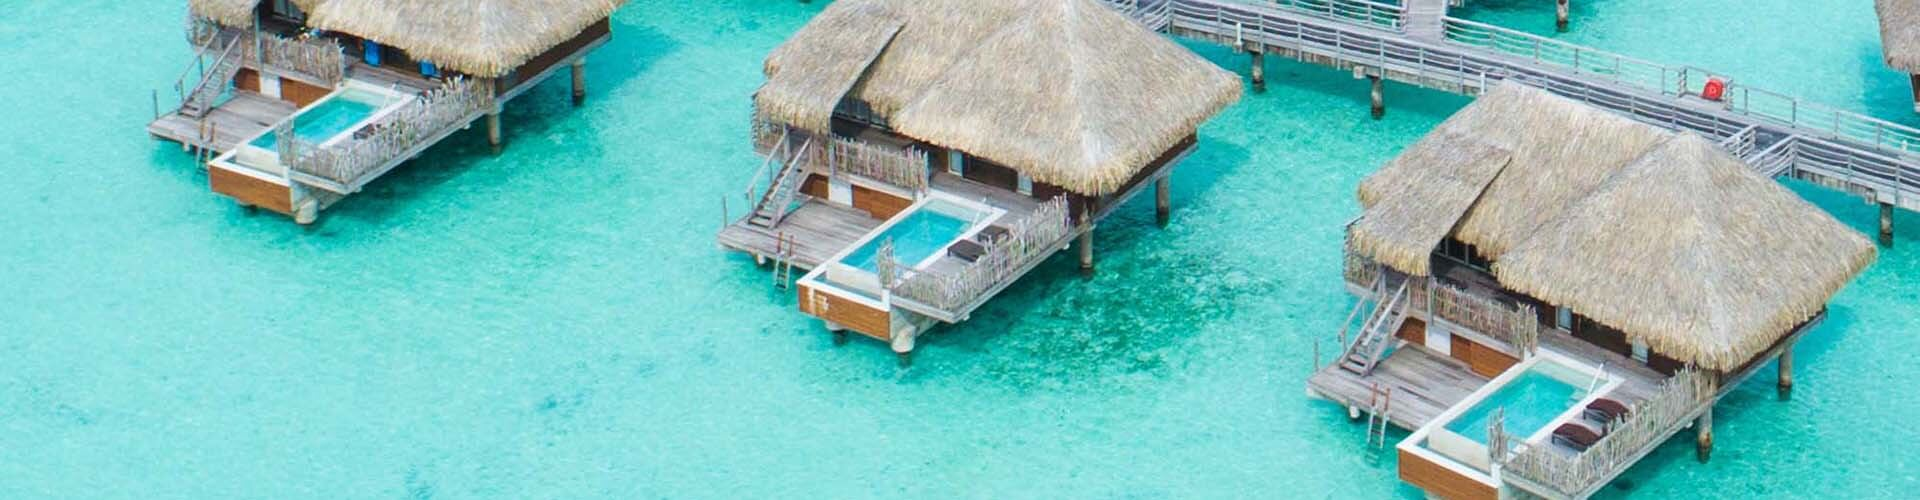 Overwater Pool Villas at the InterContinental Bora Bora Resort & Thalasso Spa